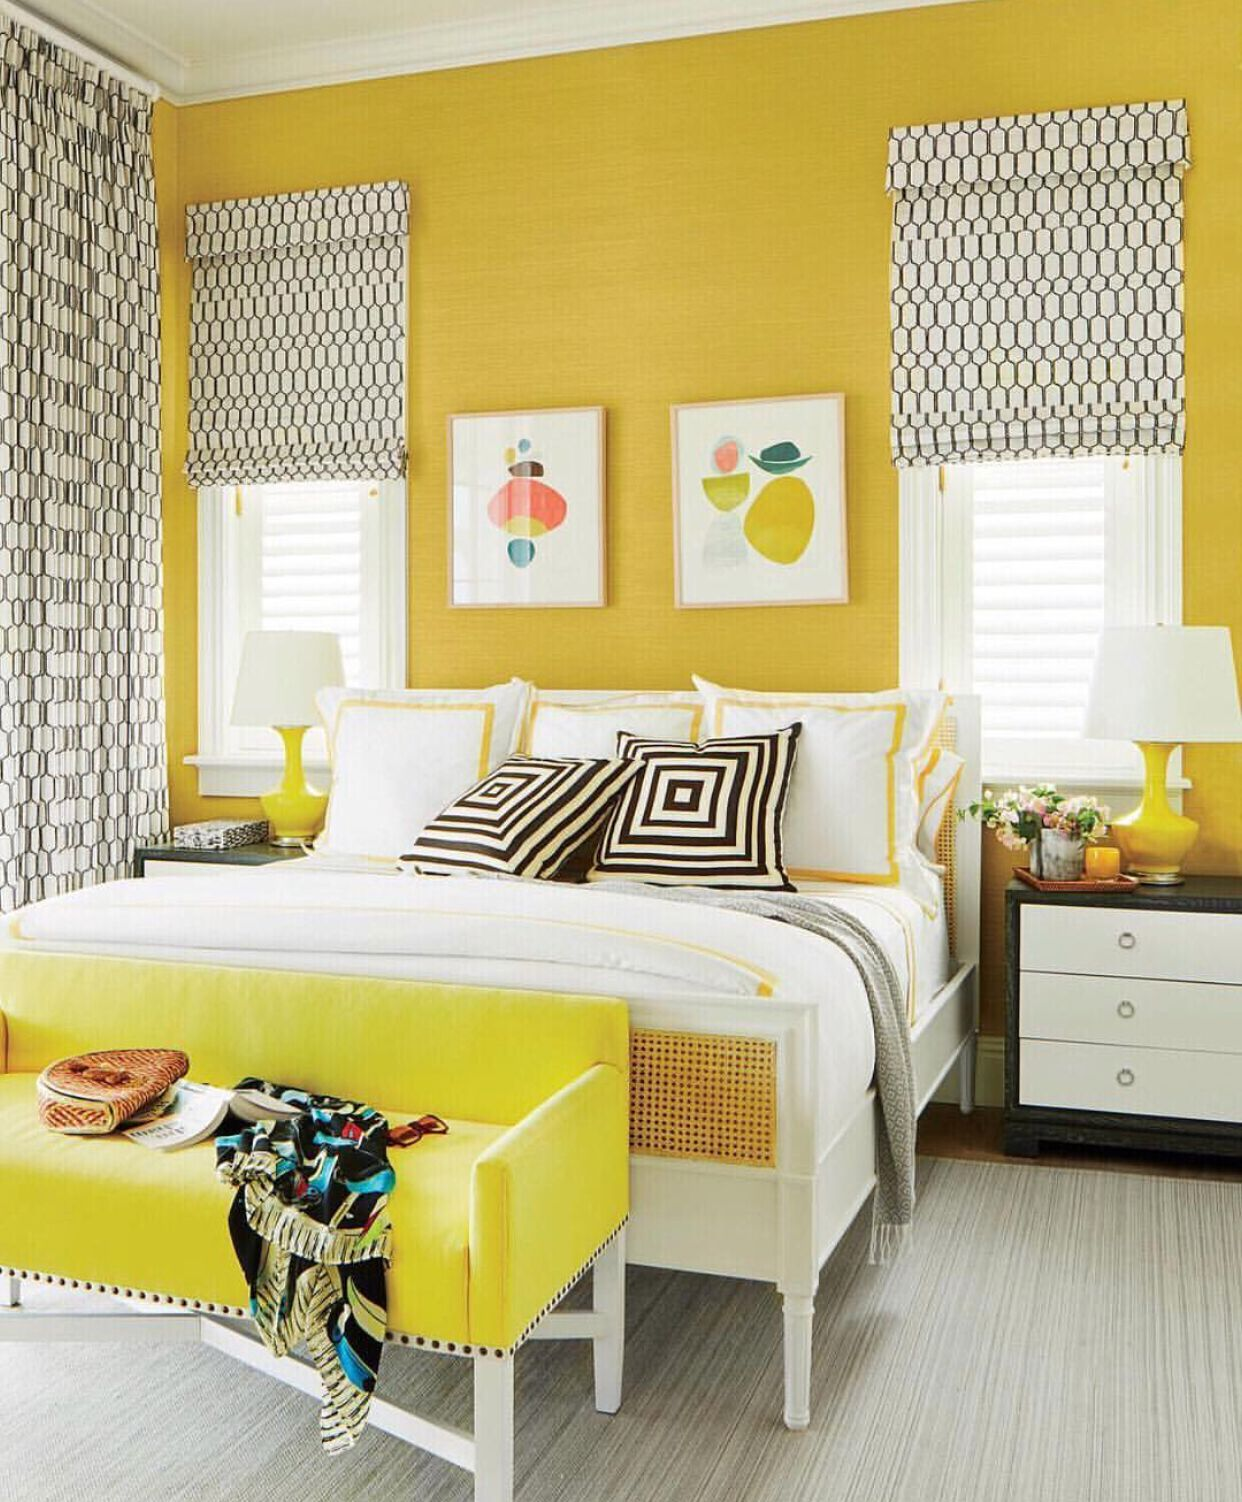 Bright And Vibrant Pineapple Bedroom Design Featuring Bungalow 5